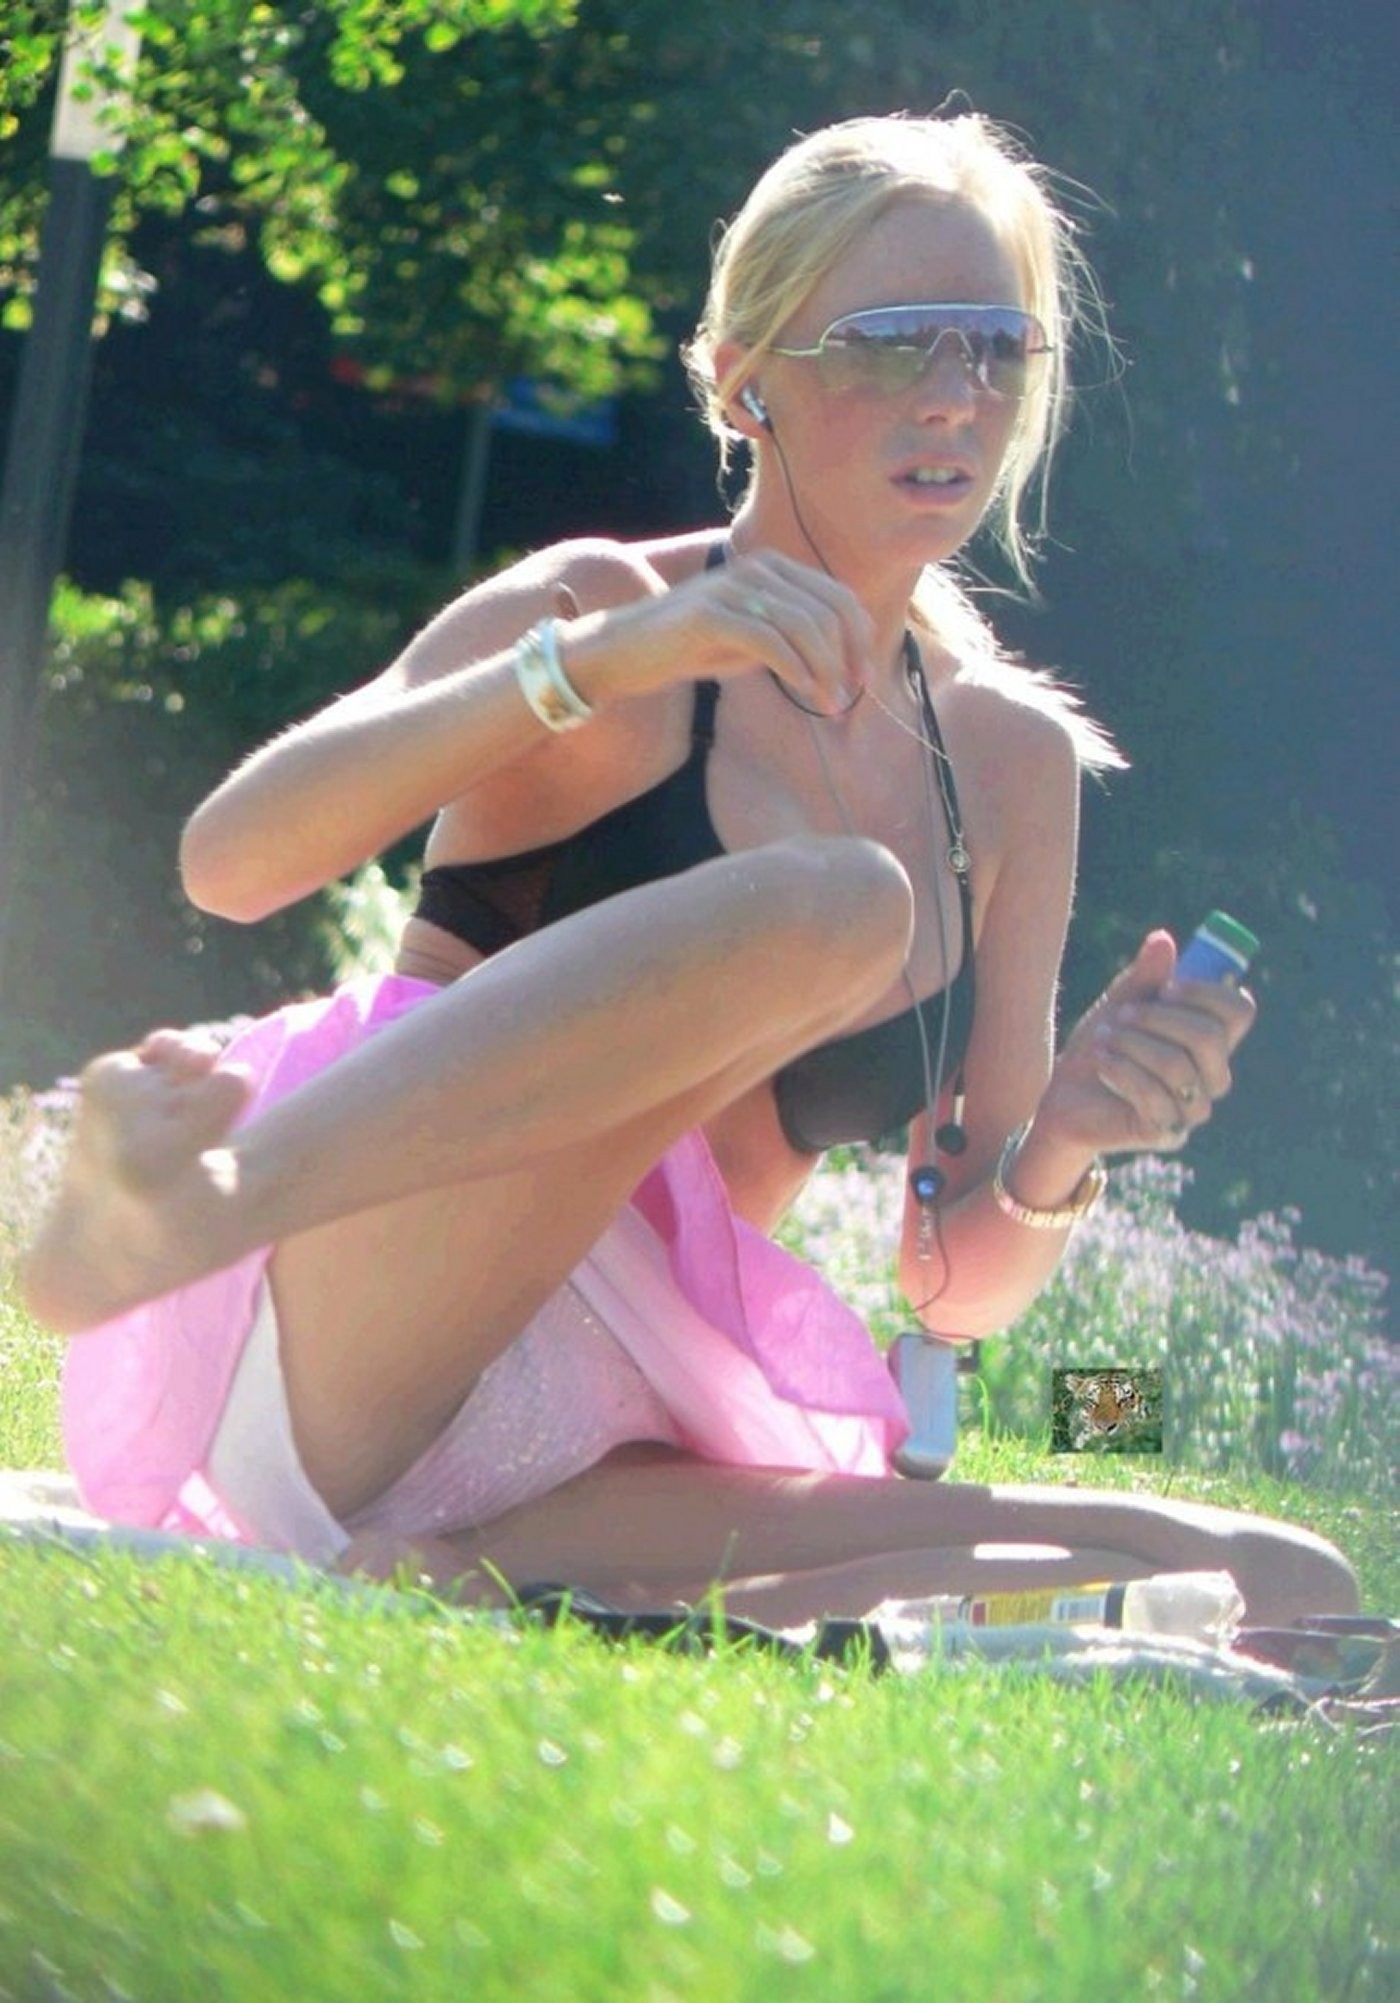 Upskirt in the park - Picture | eBaums World